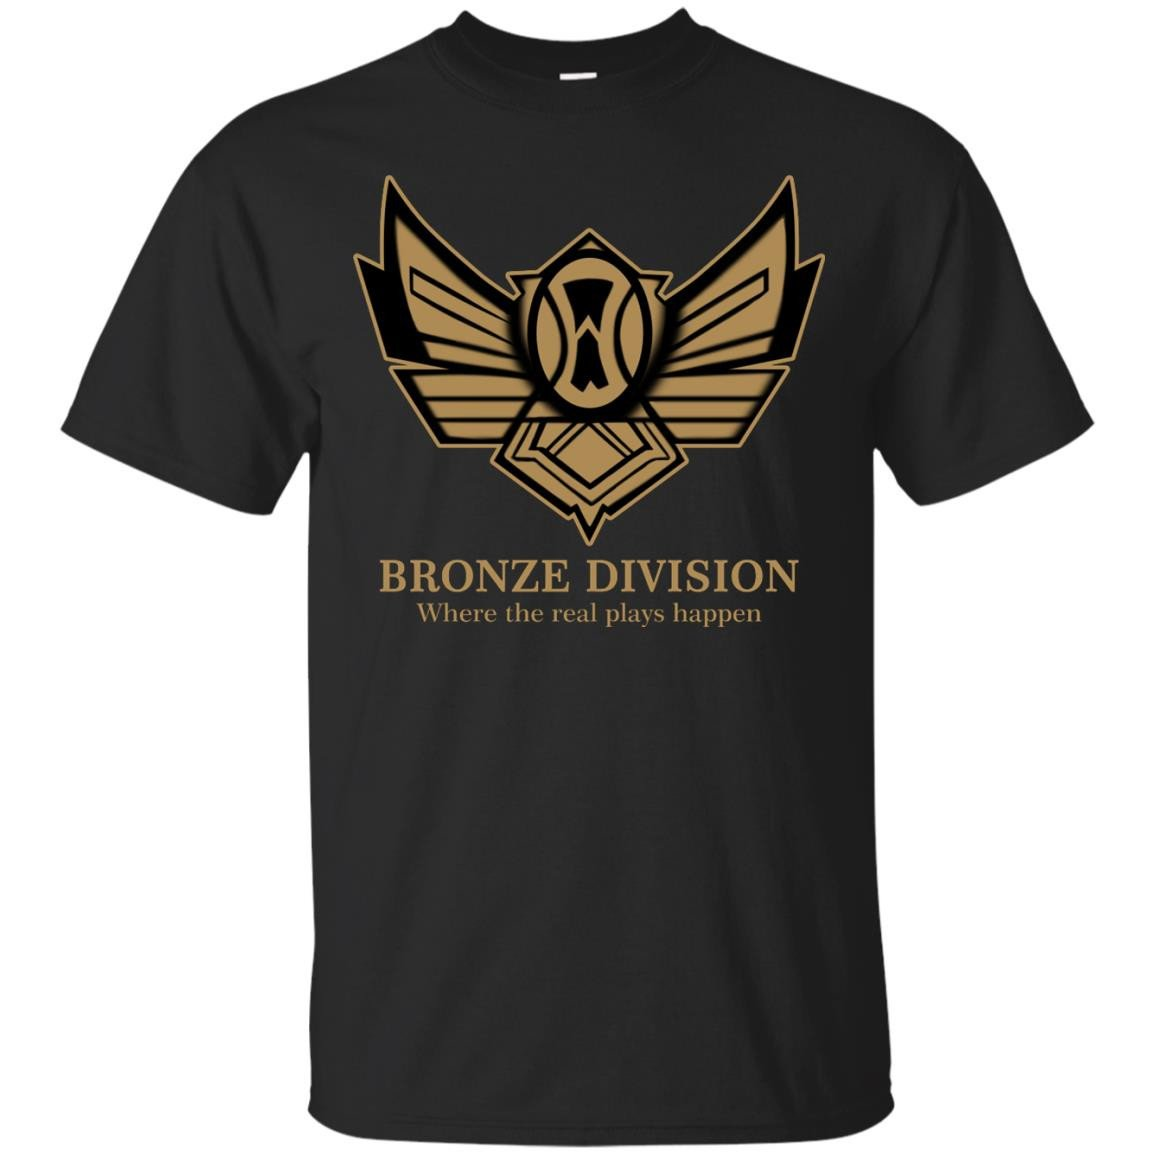 Bronze Division Cotton T-Shirt